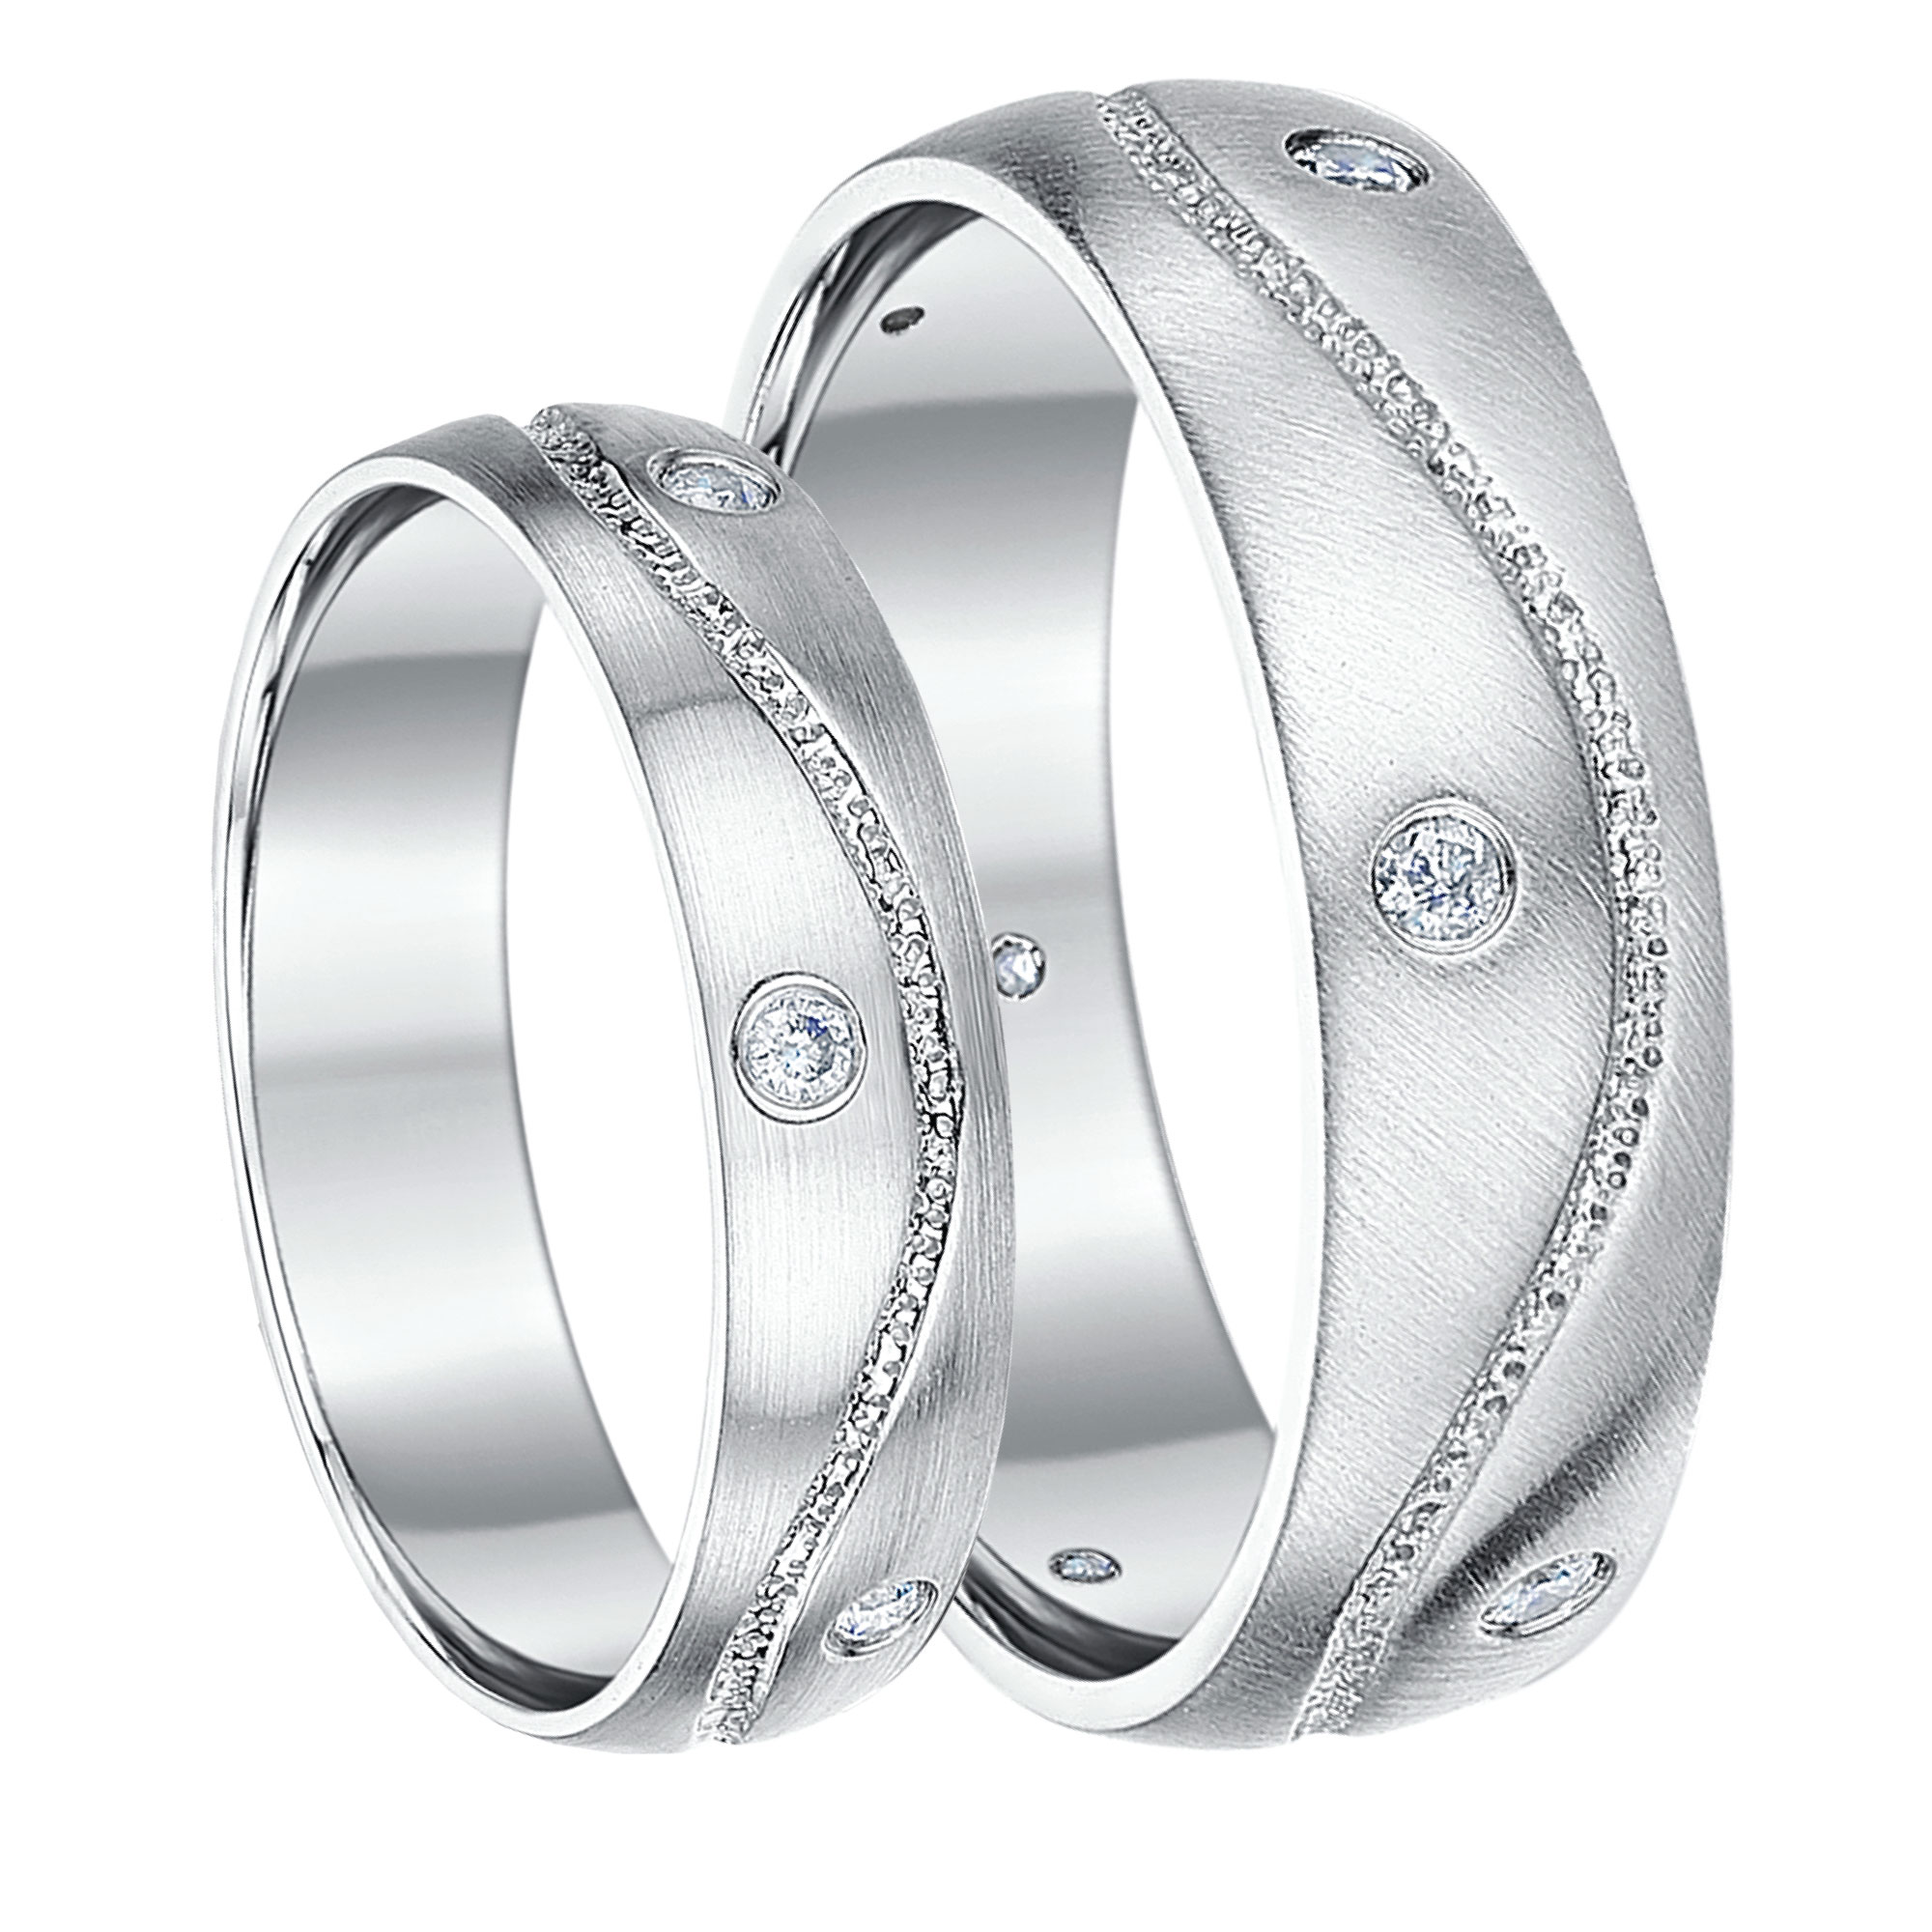 silver pictures ashworthmairsgroup rings wedding diamond titanium awesome amp sets patterned at fresh of